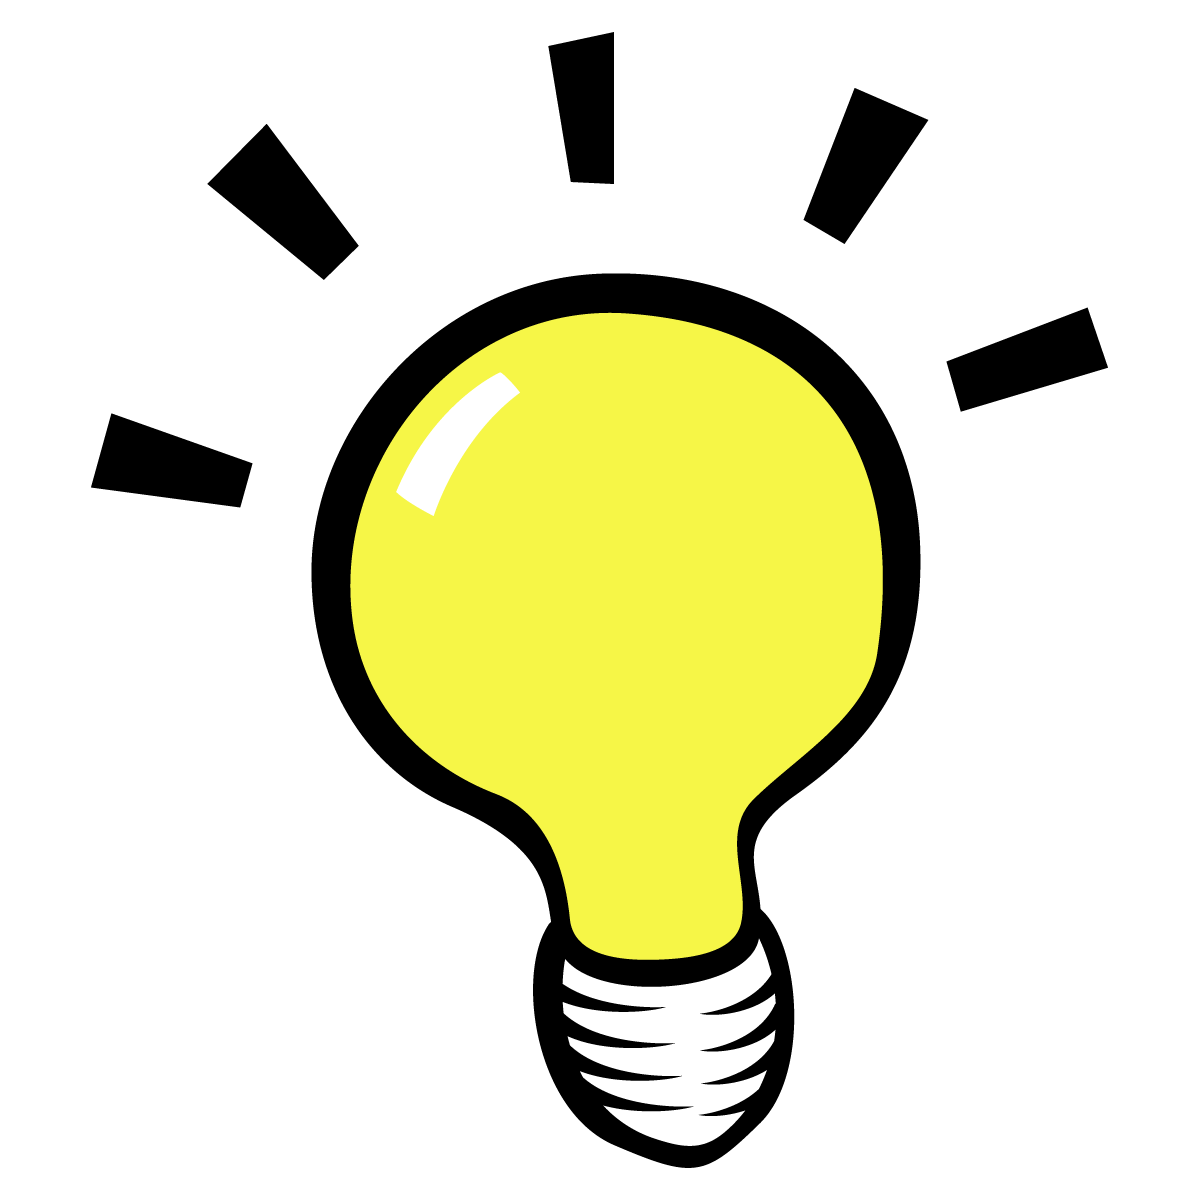 clipart stock The running musician and. Thought clipart lightbulb